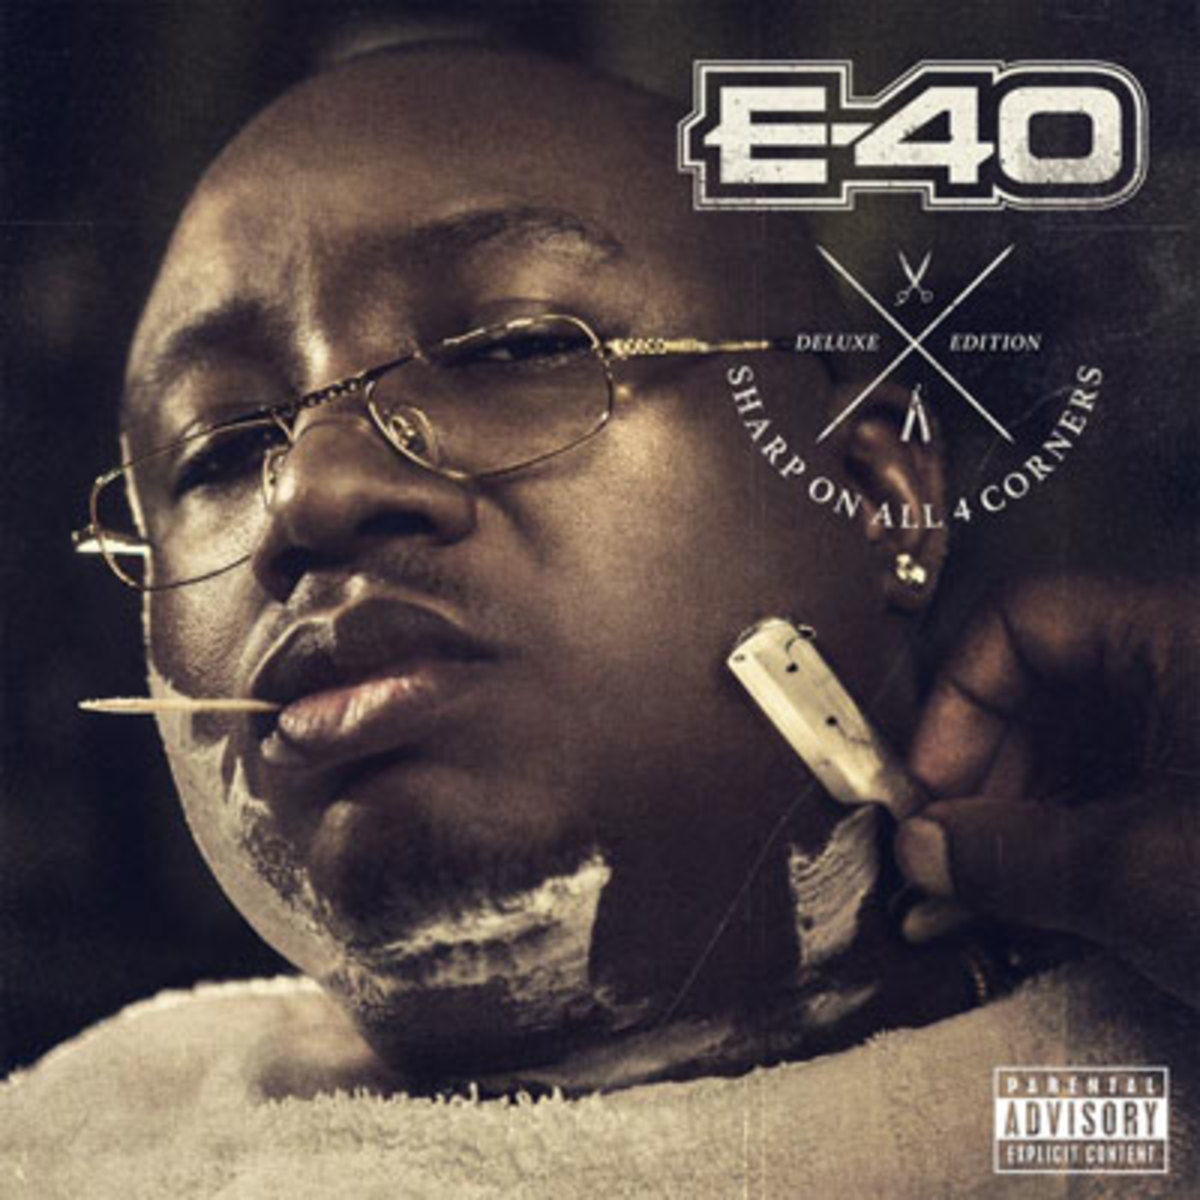 e40-sharpon4corners-de.jpg